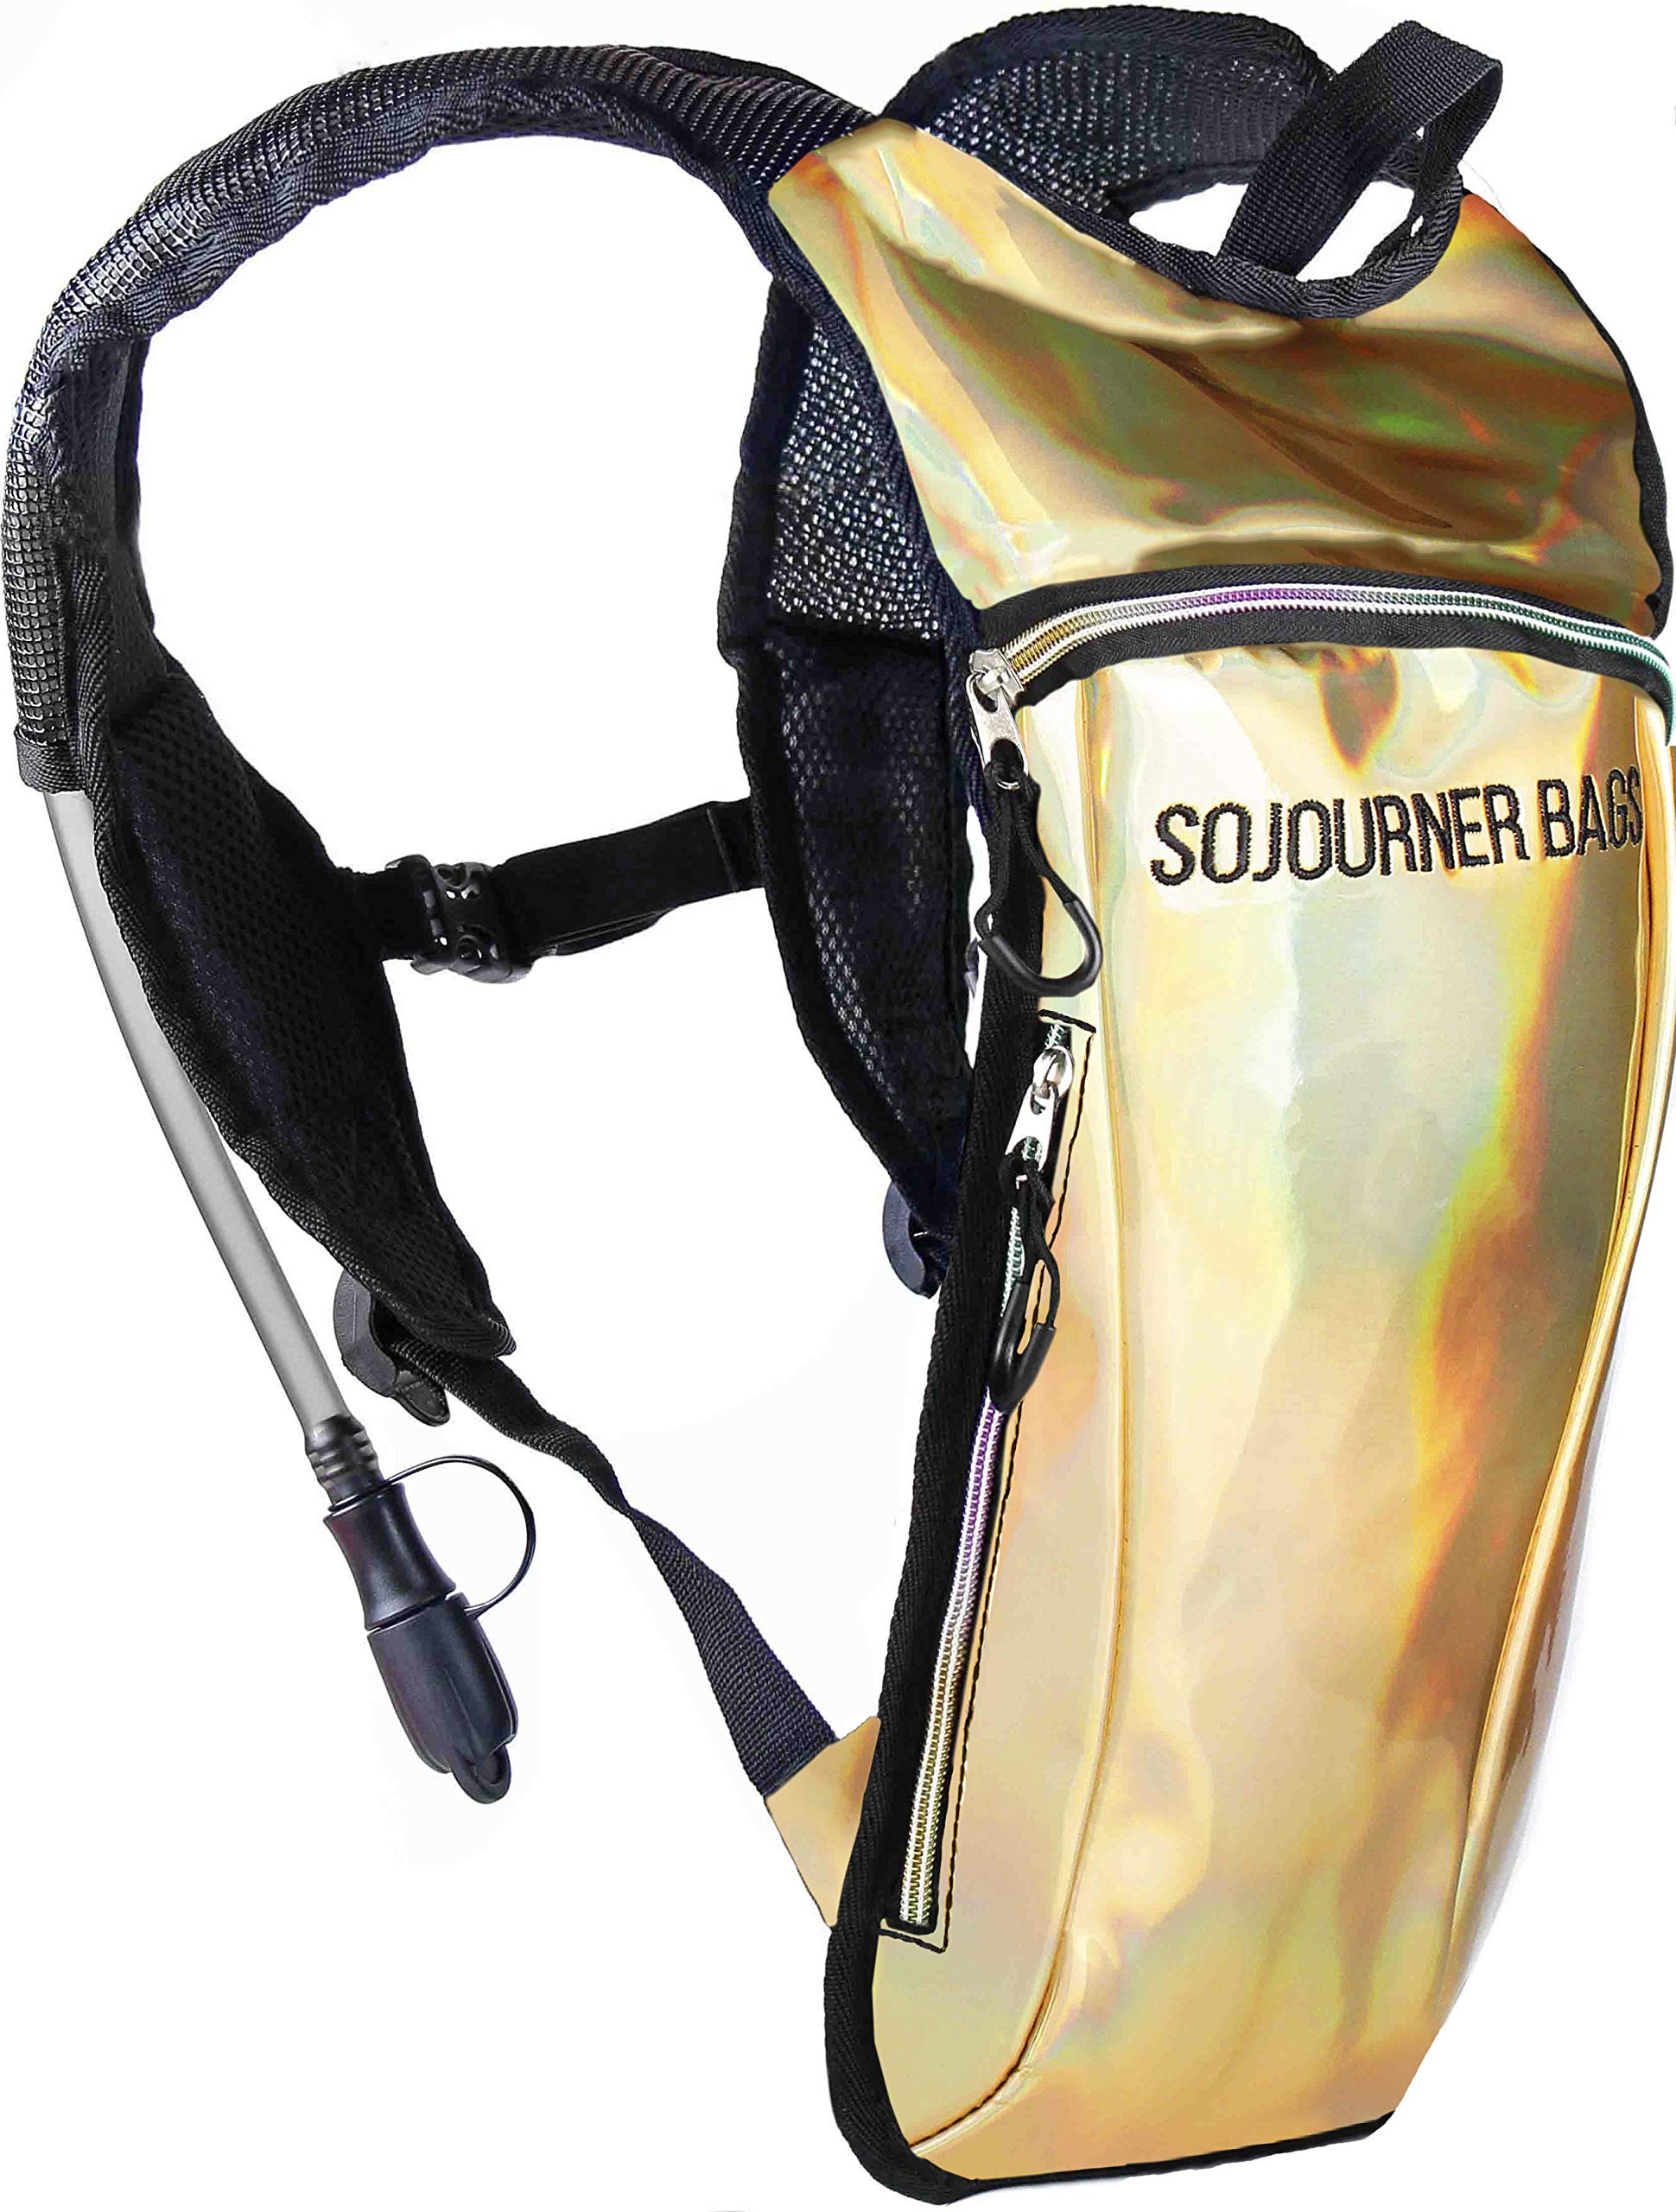 Sojourner Rave Hydration Pack Backpack - 2L Water Bladder Included for Festivals, Raves, Hiking, Biking, Climbing, Running (Holographic Gold)